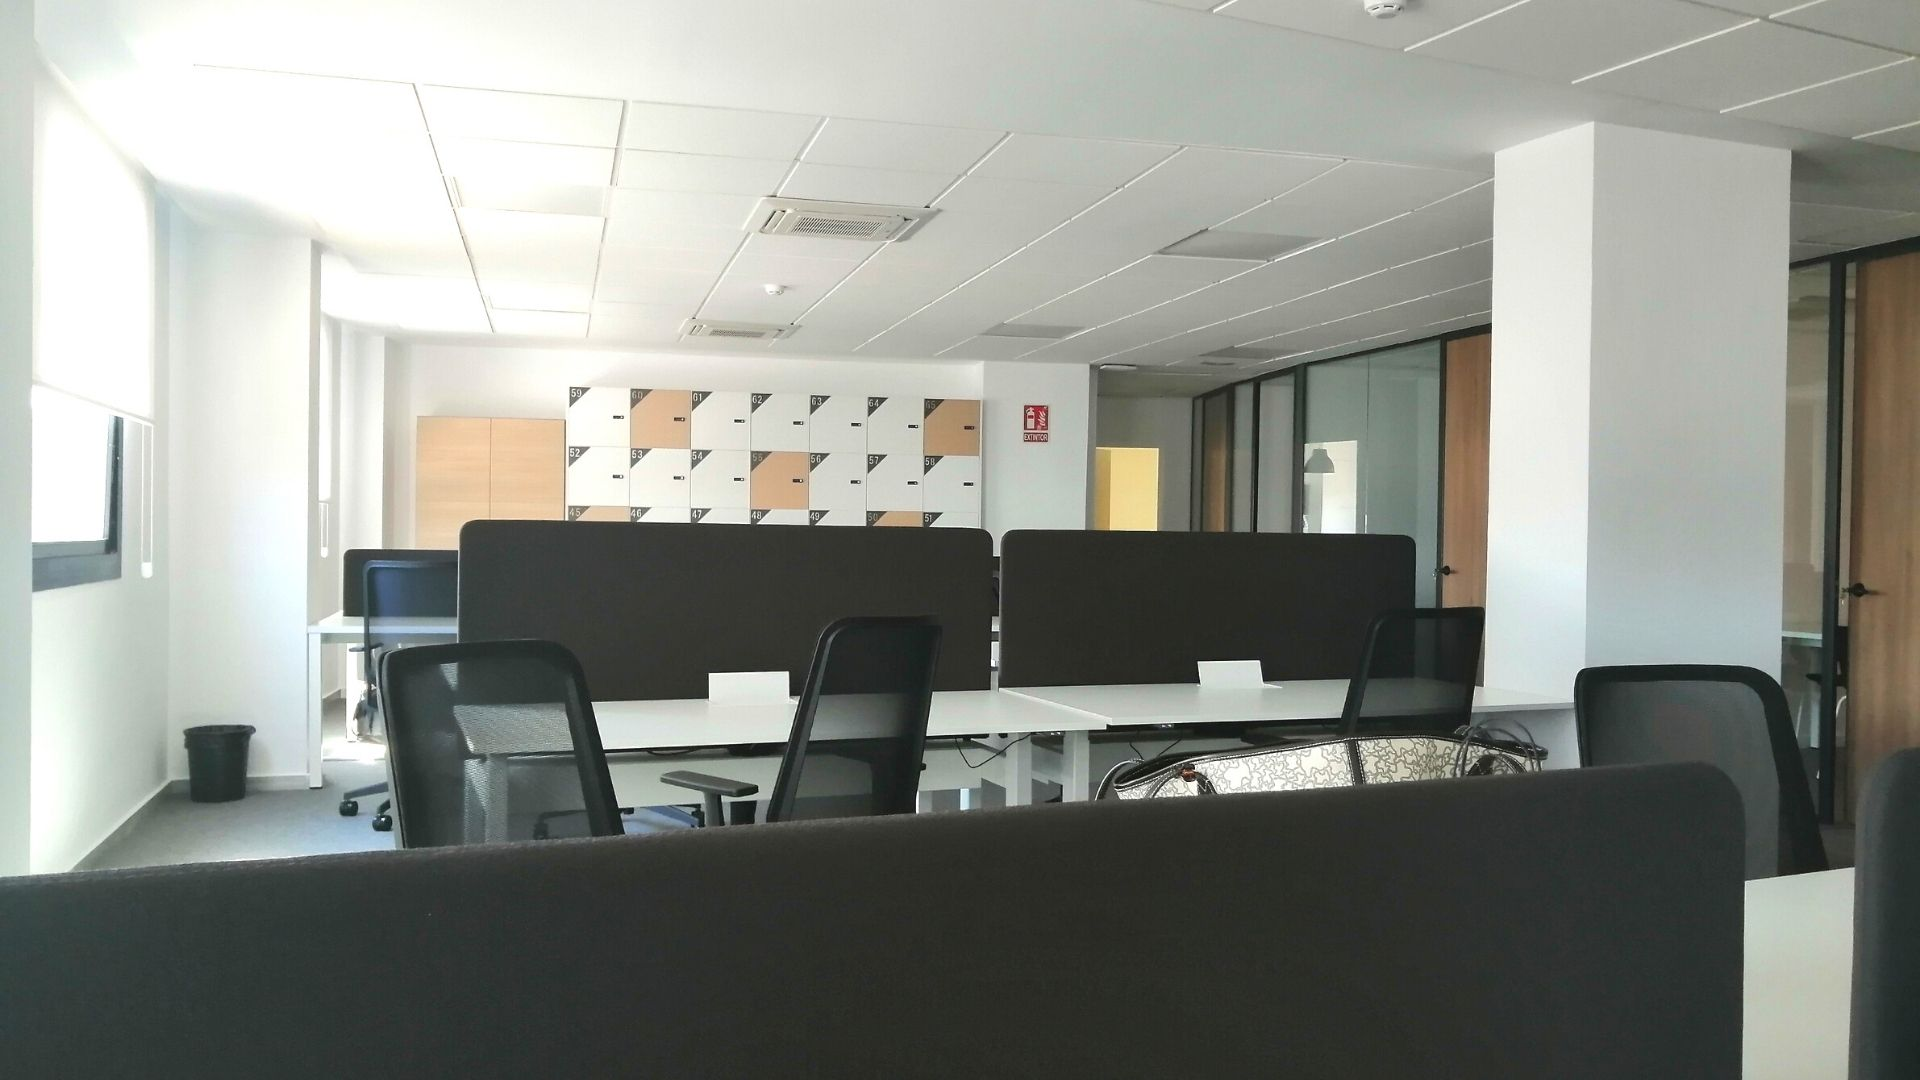 Our new Adessa office in Malaga is open! - final desks